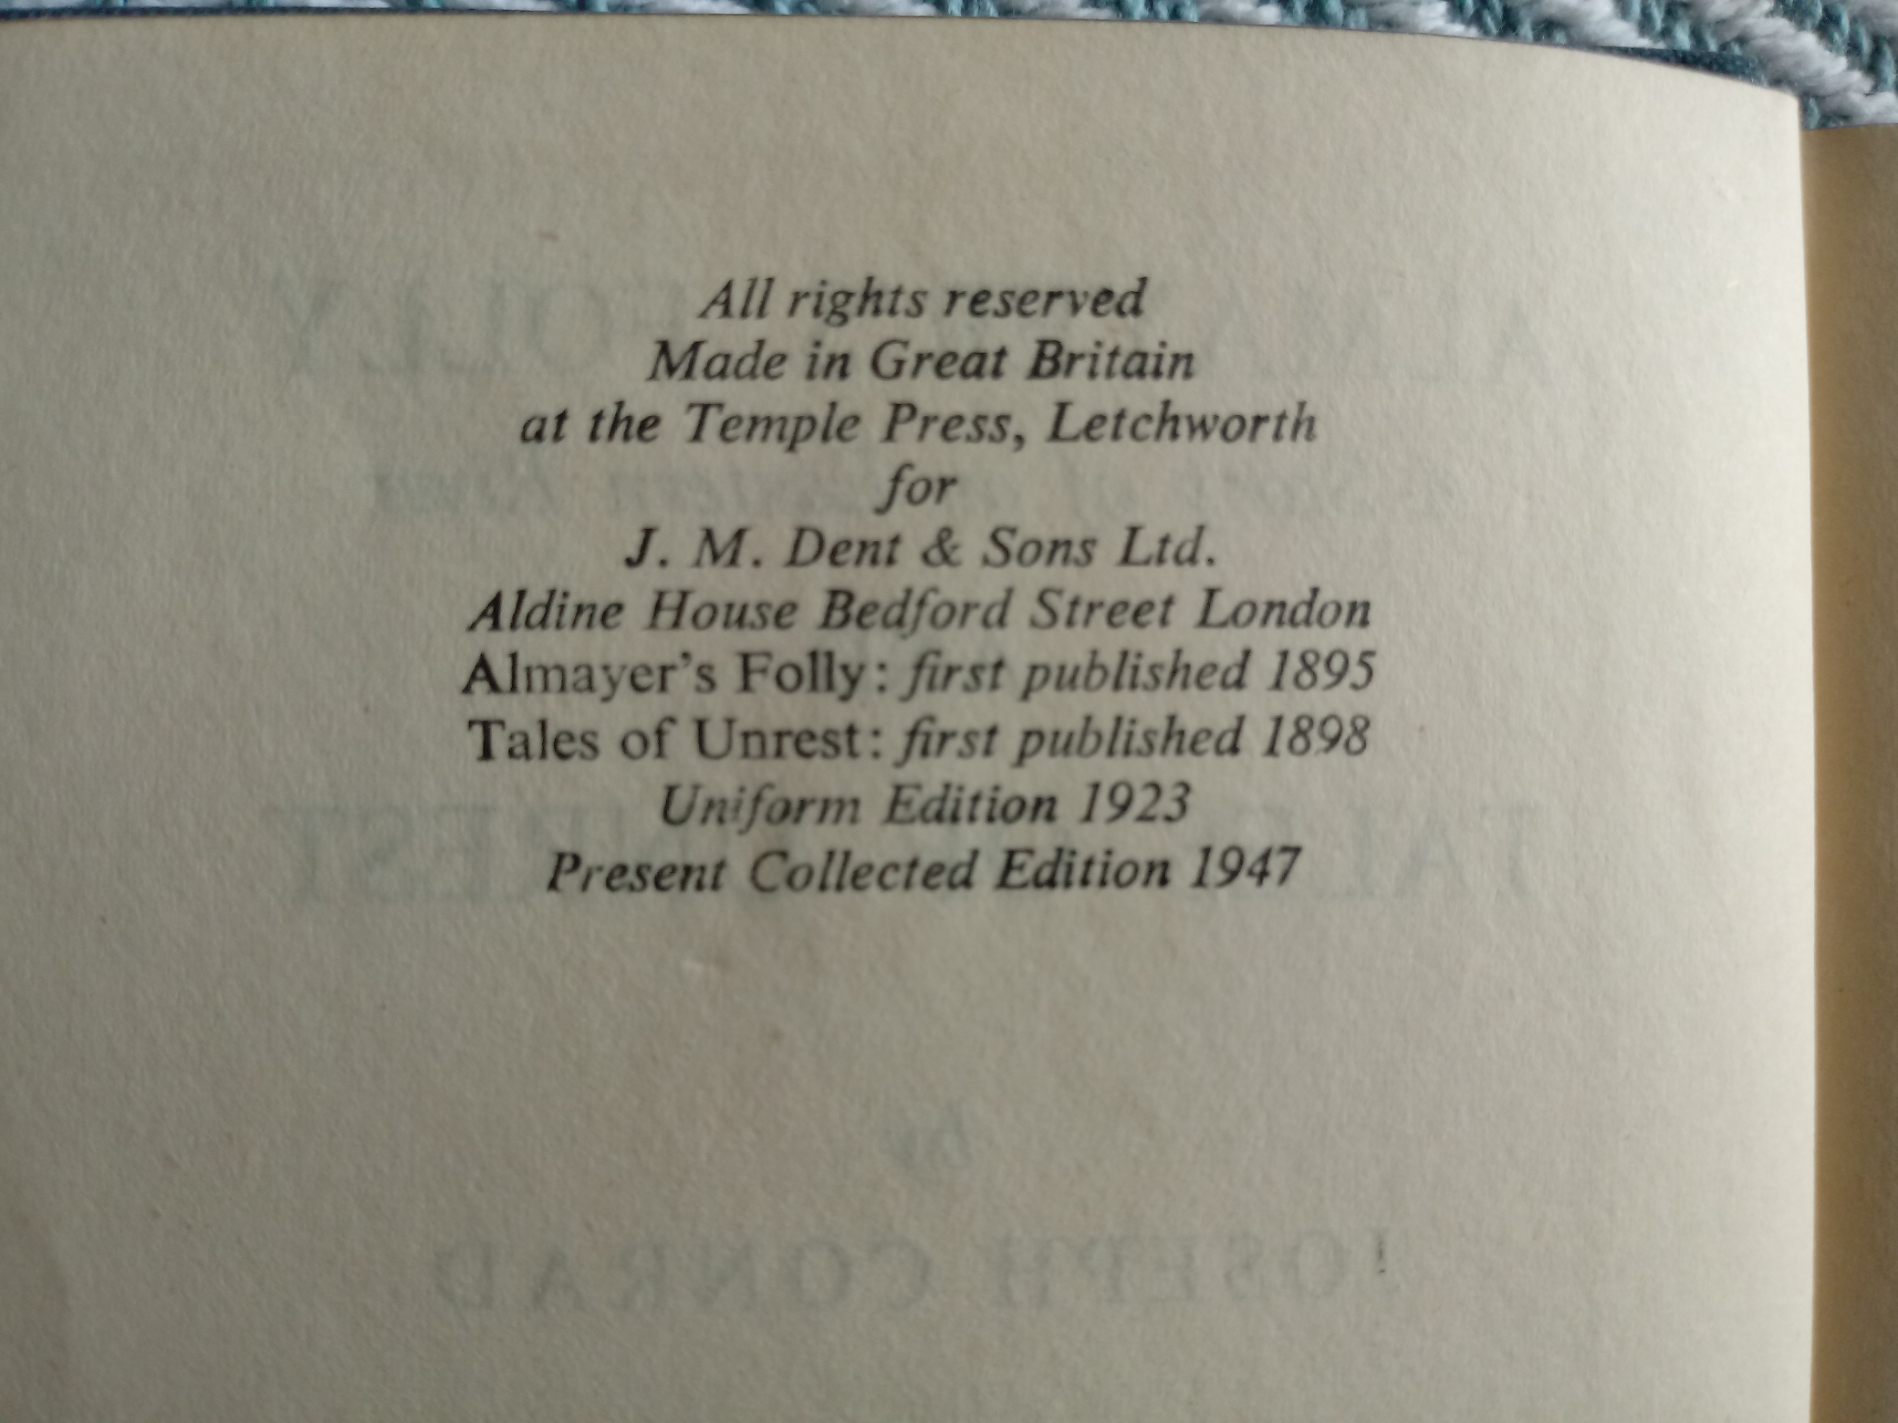 Almayer's Folly A Story of an Eastern River and Tales Of Unrest by Joseph Conrad Hardback book 204 - Image 4 of 4